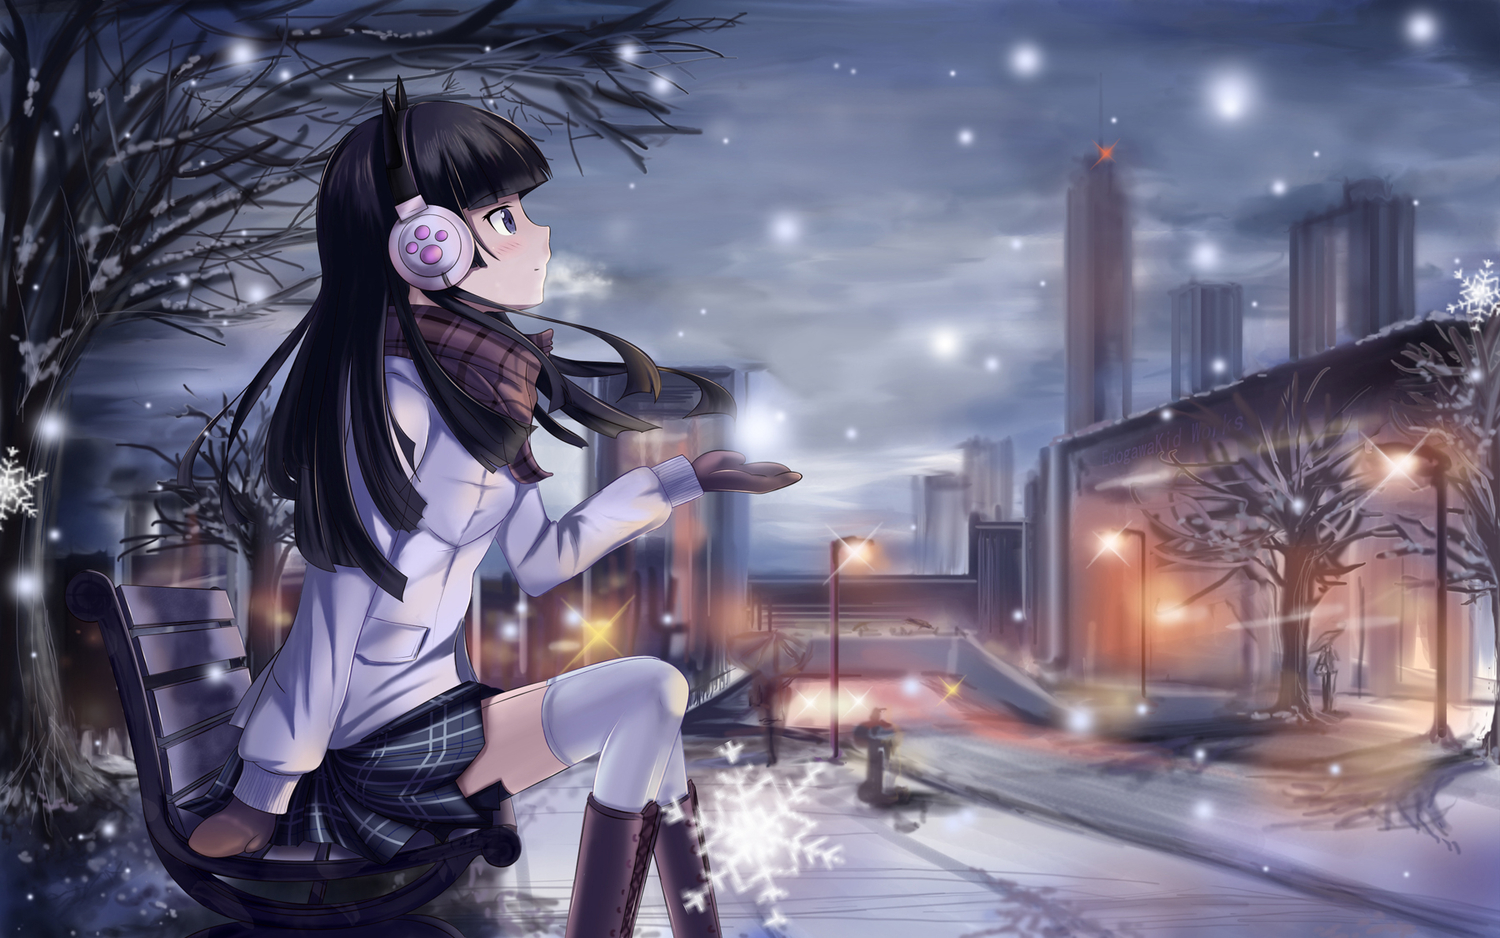 animal_ears black_hair blue_eyes blush boots city edogawakid gloves gokou_ruri headphones long_hair ore_no_imouto_ga_konna_ni_kawaii_wake_ga_nai scarf skirt snow thighhighs tree umbrella winter